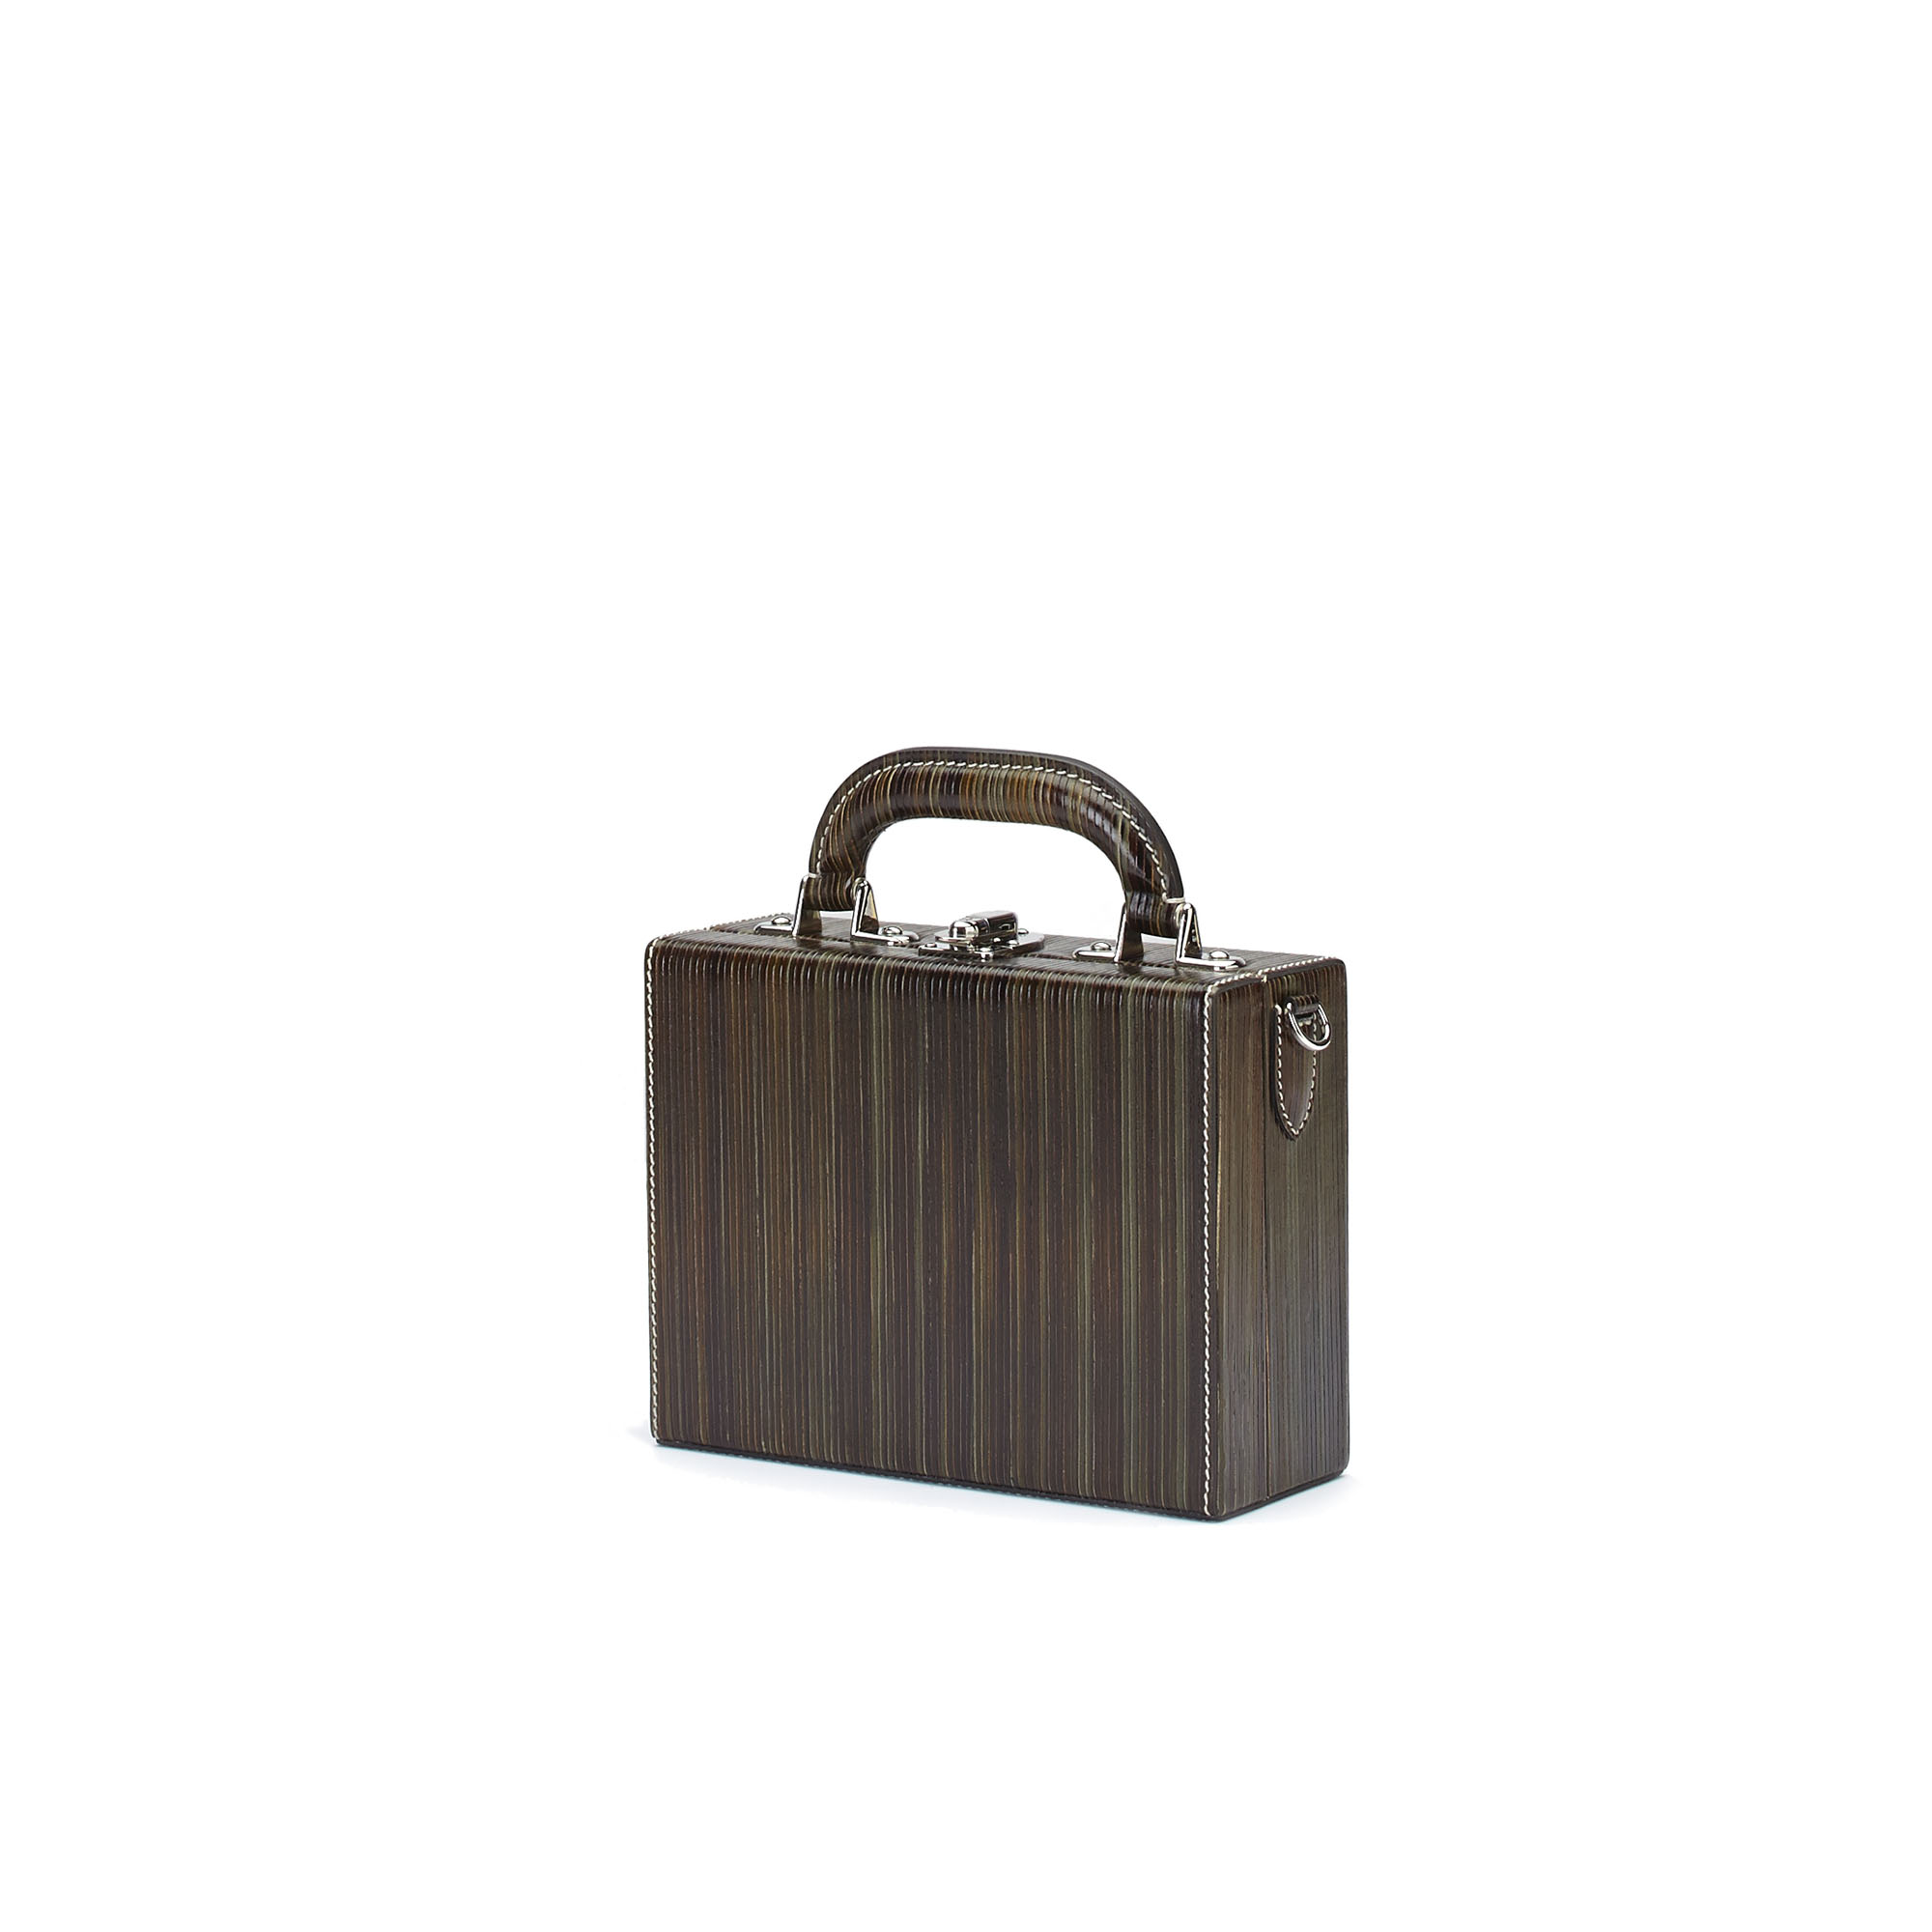 The green wood leather Squared Bertoncina suitcase by Bertoni 1949 02